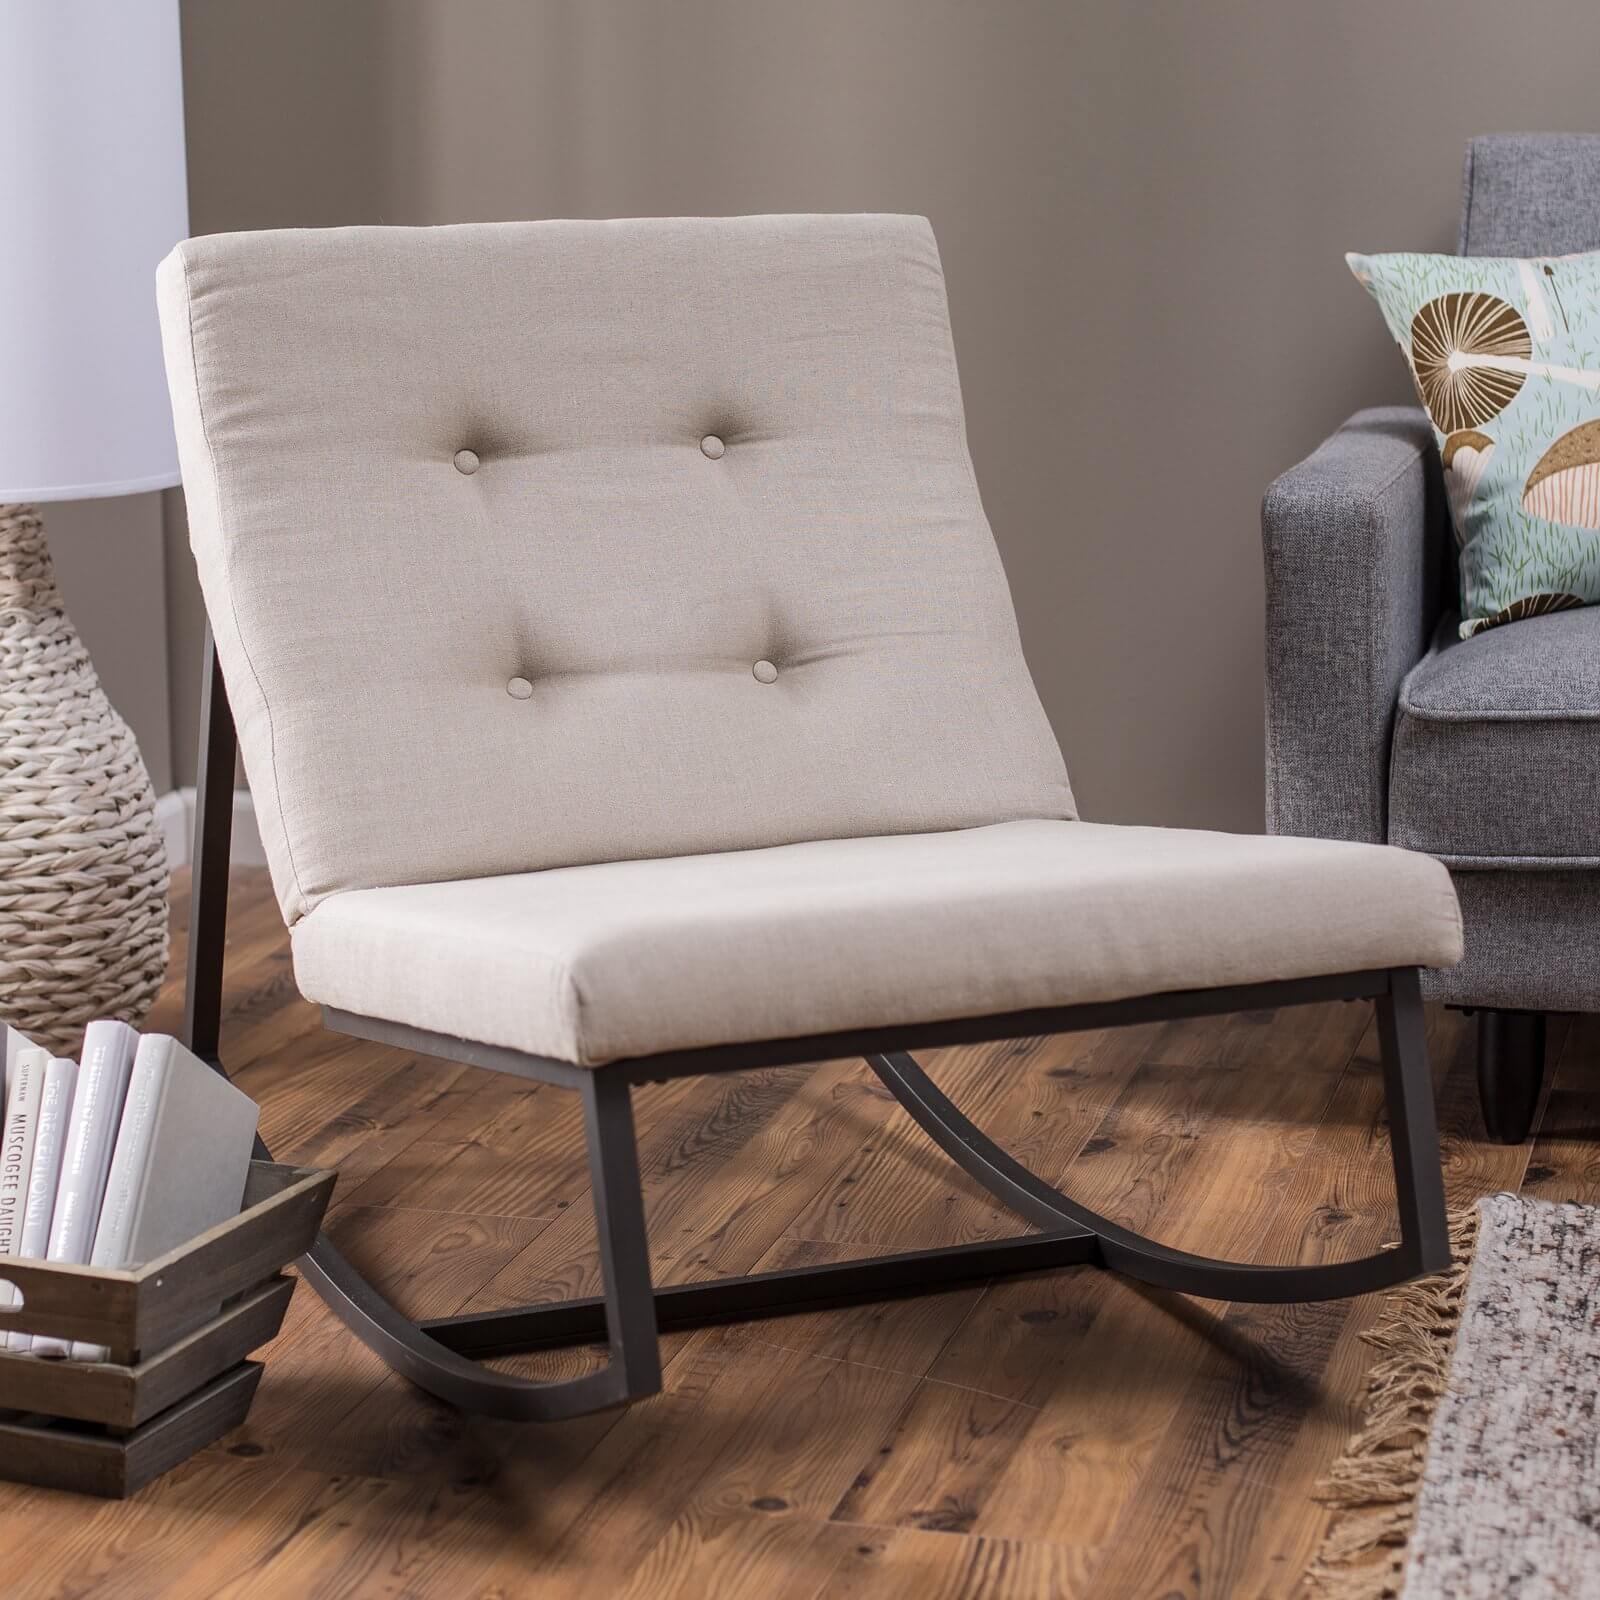 While most rocking chairs feature a simple, direct design with a wooden frame and bare seat, there are a multitude of upholstered models to choose from. We have shared an armless contemporary example here, with button tufted plush back.